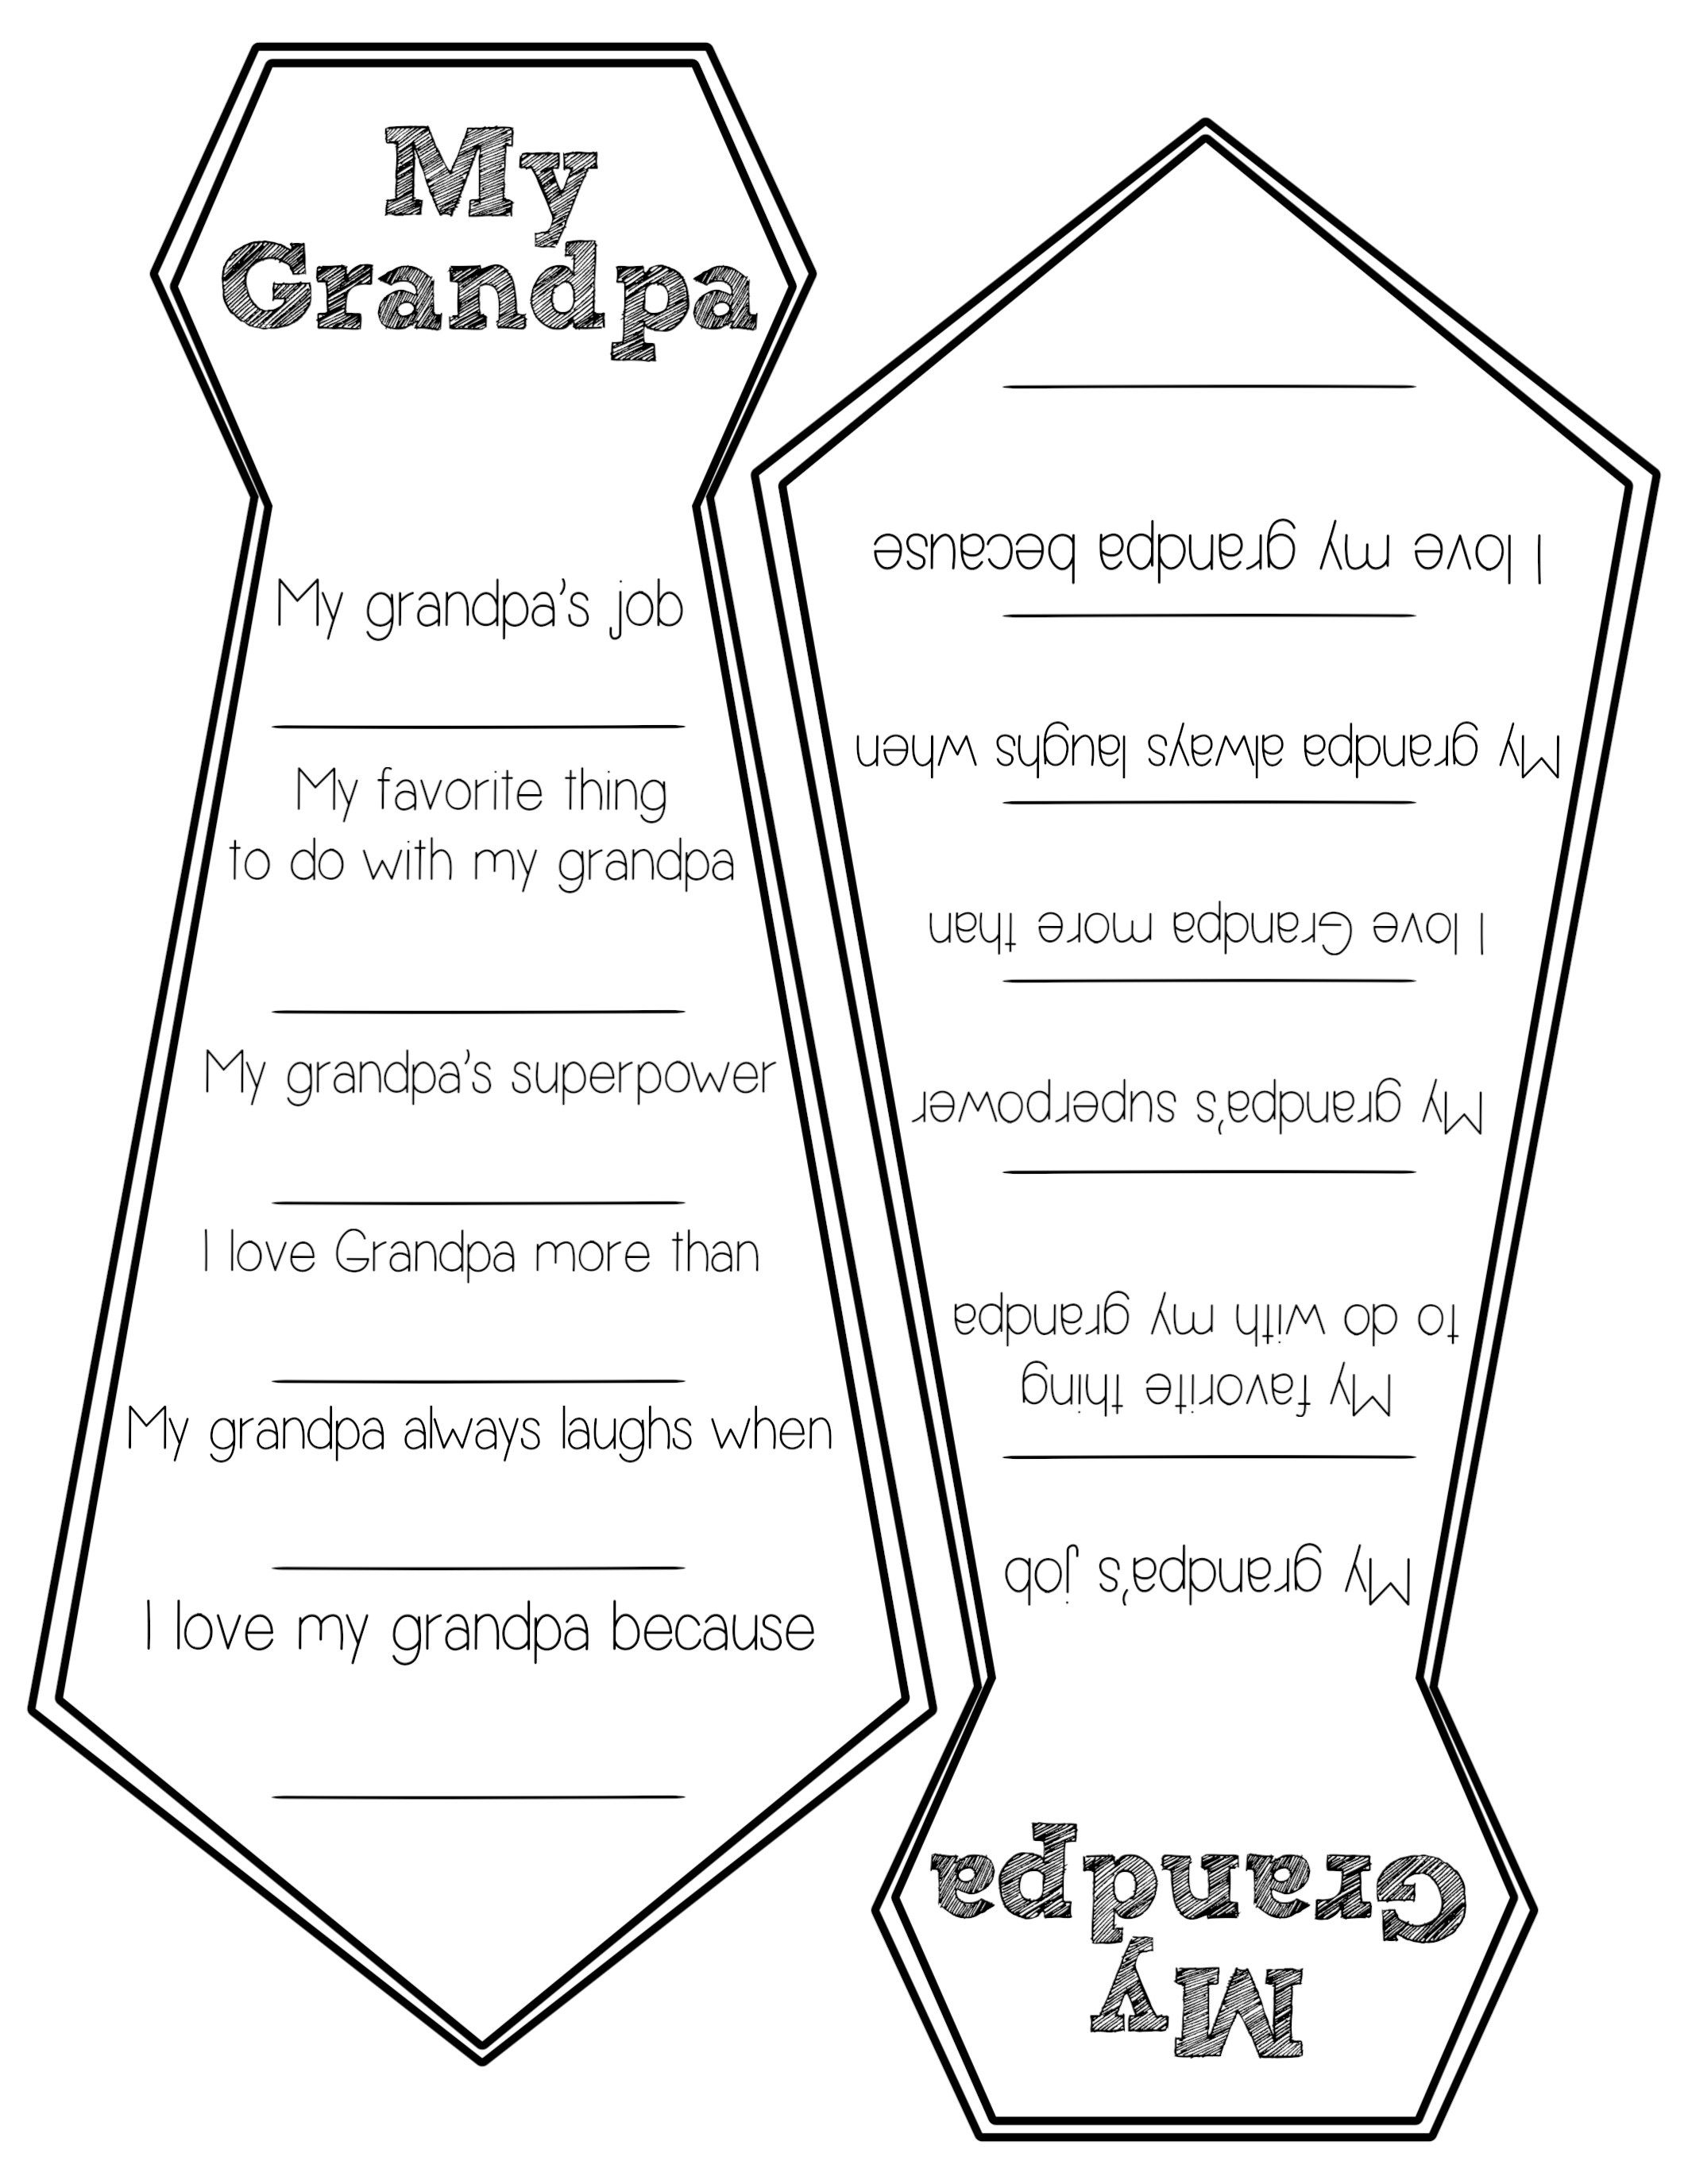 Father's Day Free Printable Cards   Kids   Pinterest   Fathers Day - Free Printable Fathers Day Cards For Preschoolers